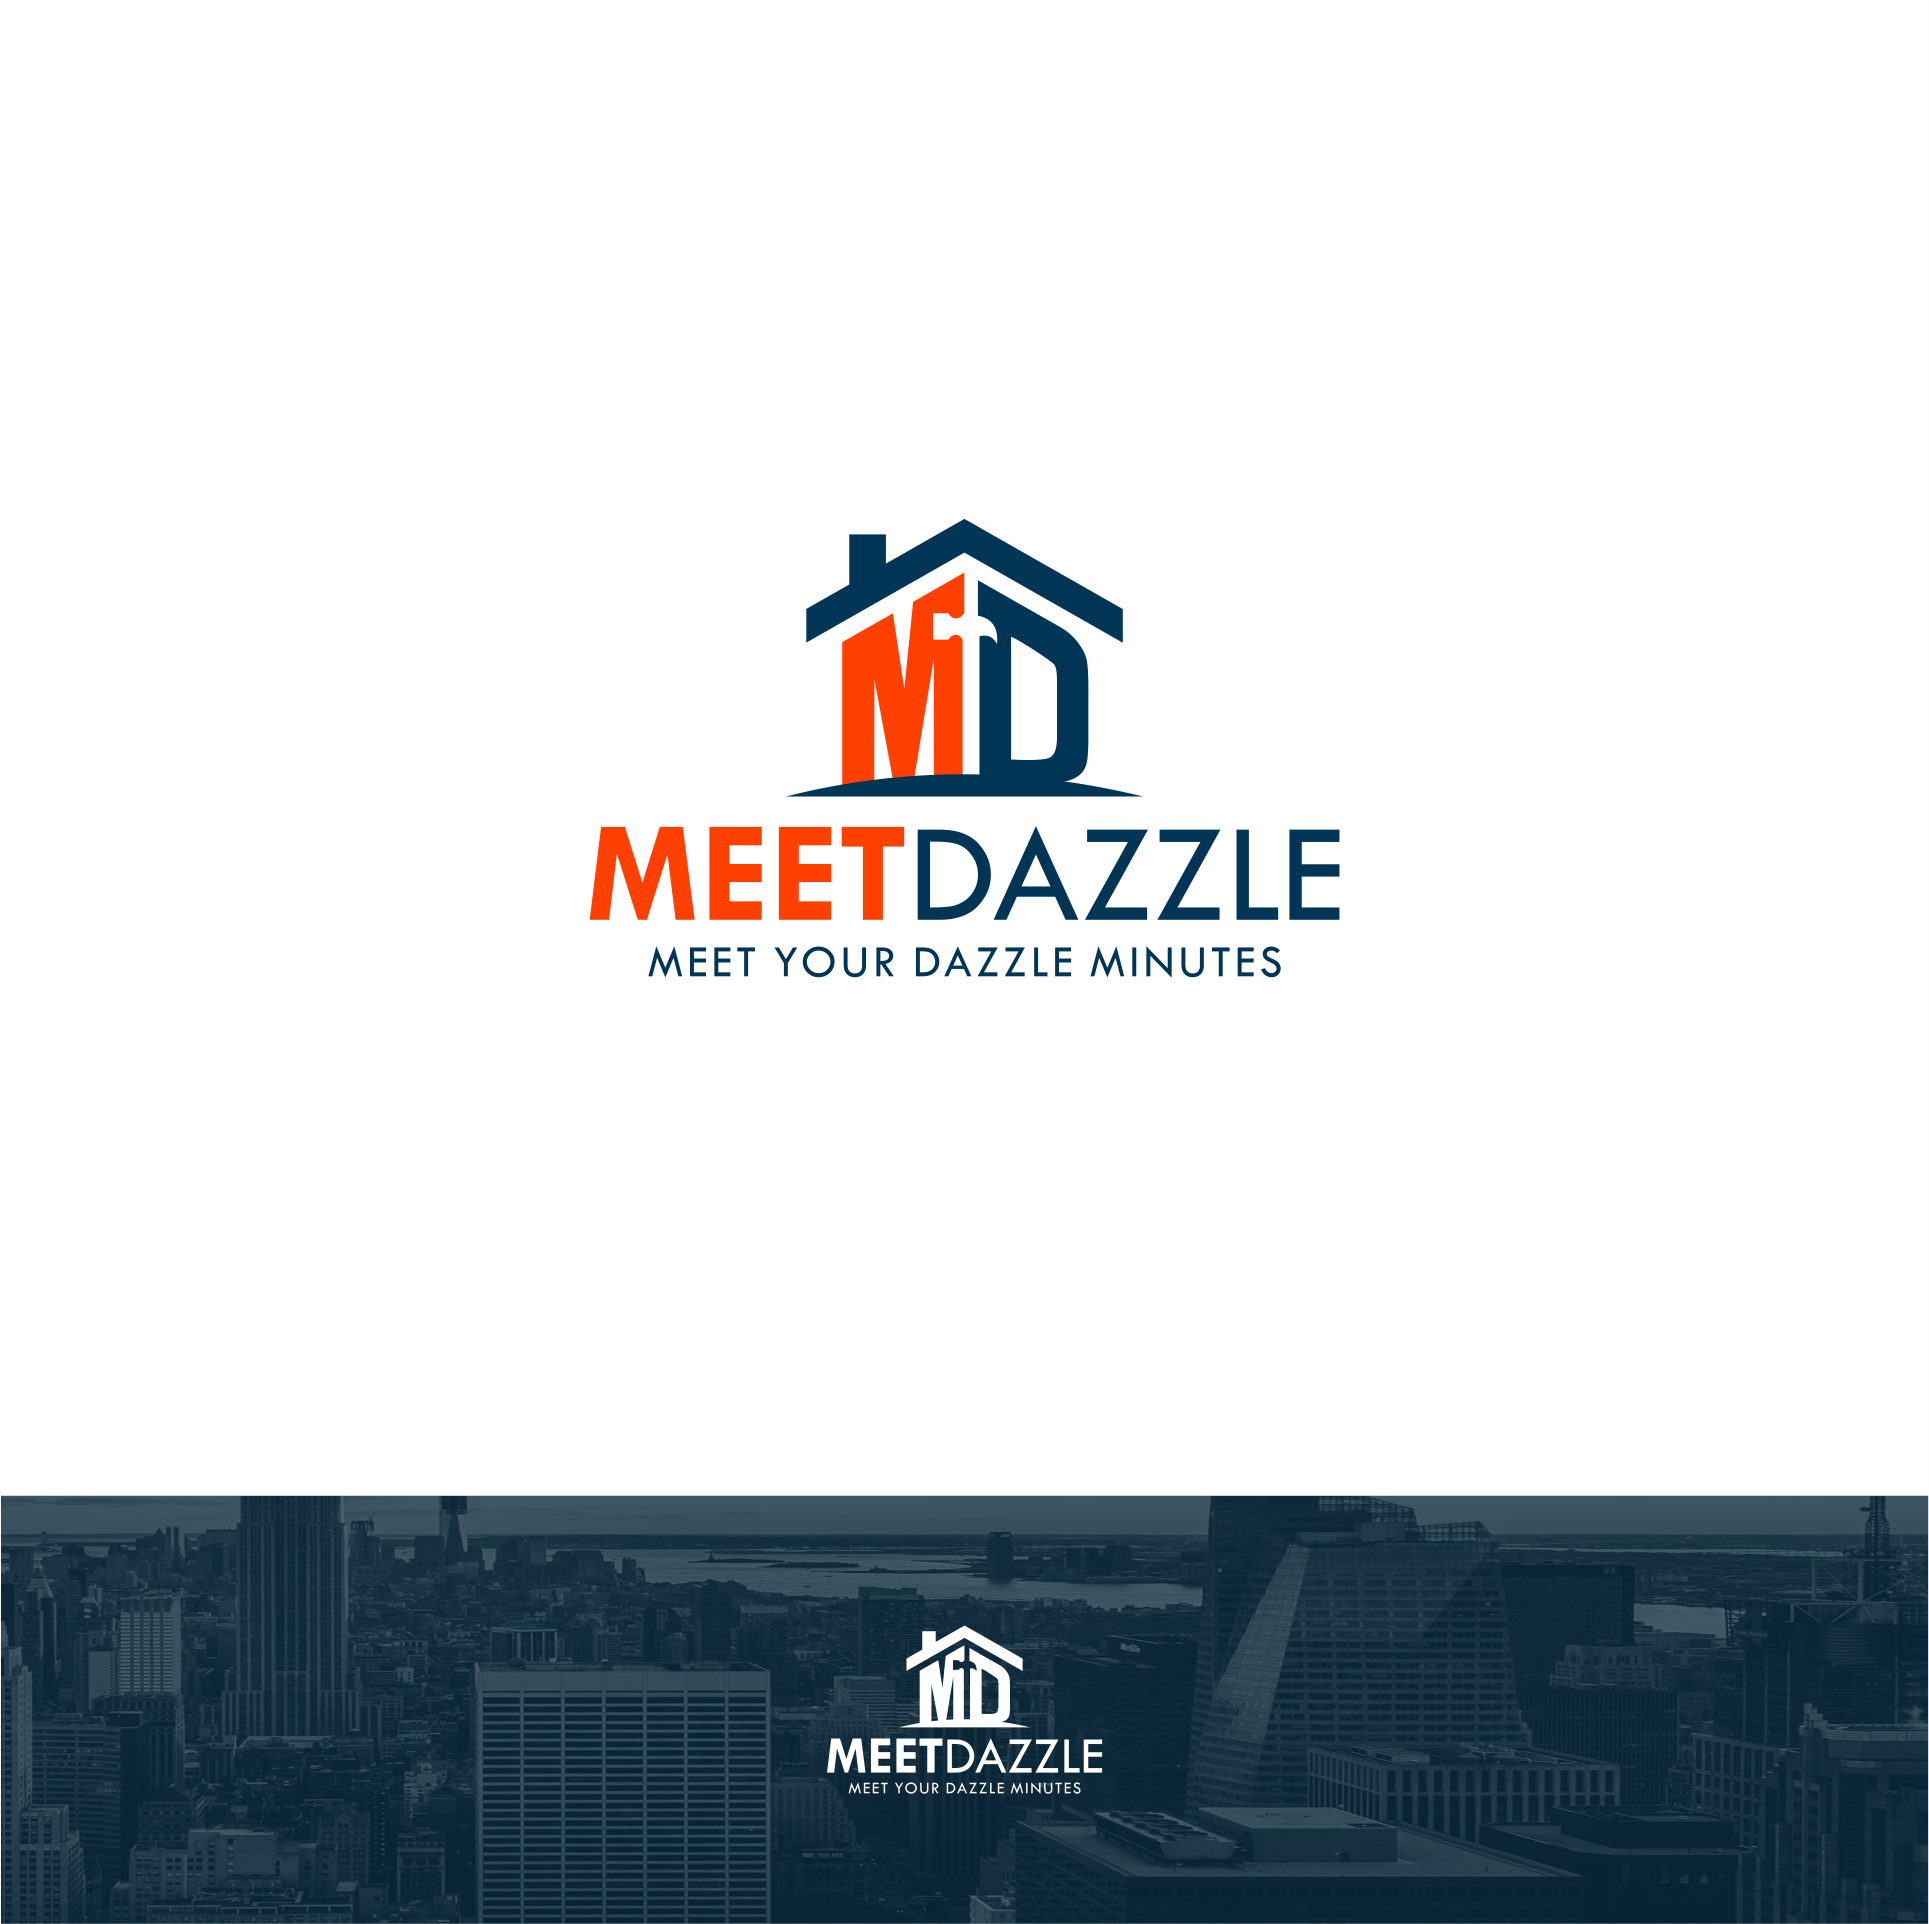 MeetDazzle Brand Logo for Tools & Home improvement Product